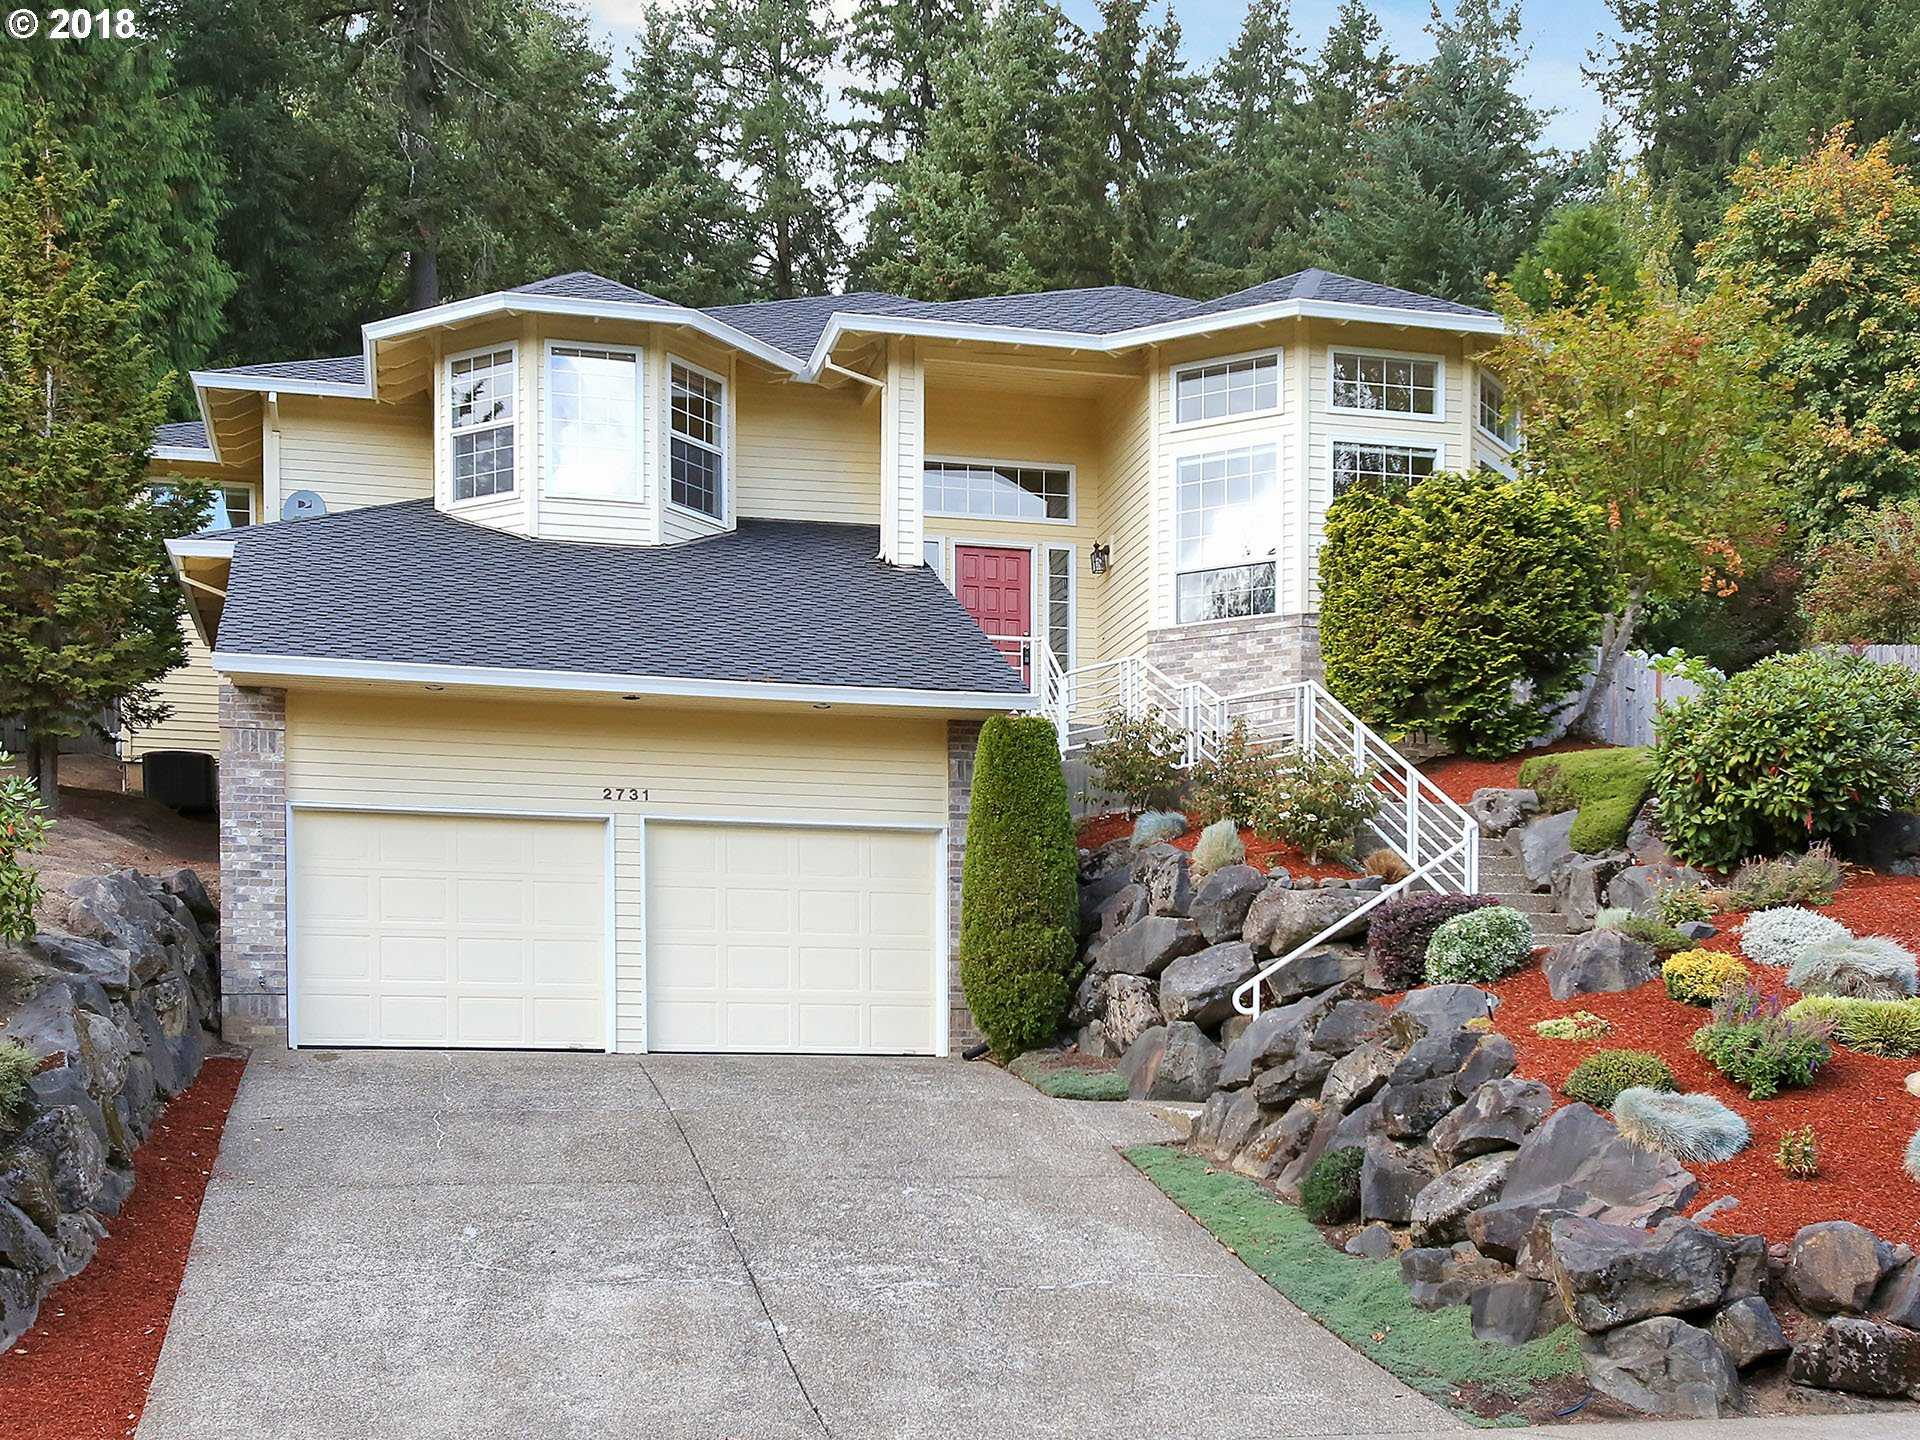 $524,000 - 3Br/3Ba -  for Sale in Arnold Woods, Portland